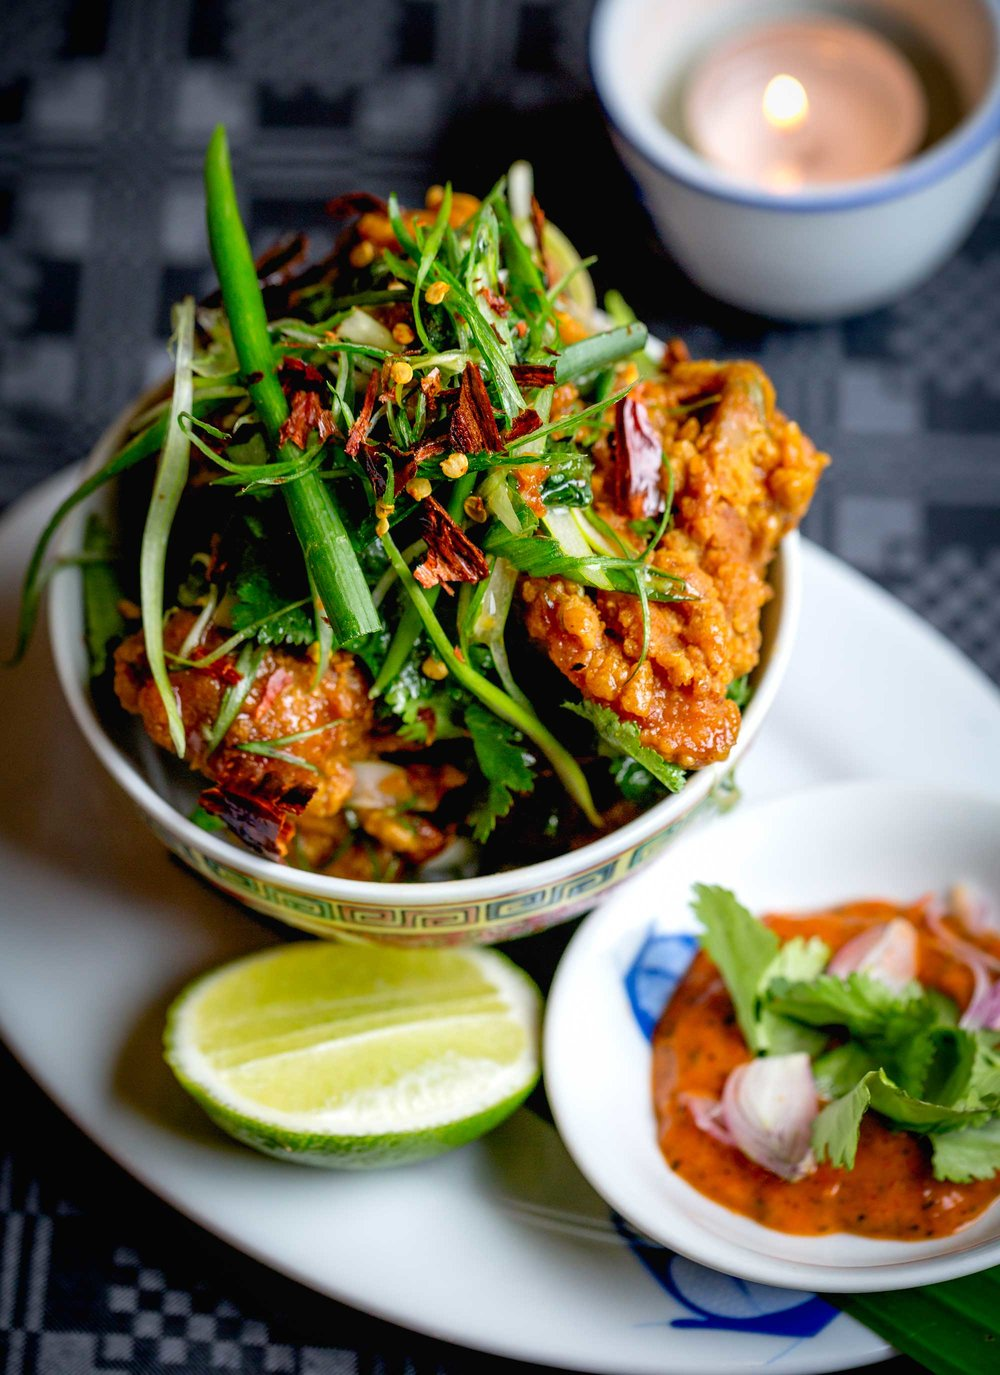 'Gai Prik', Crispy Free-Range Chicken Bites with Burnt Chilli Sauce